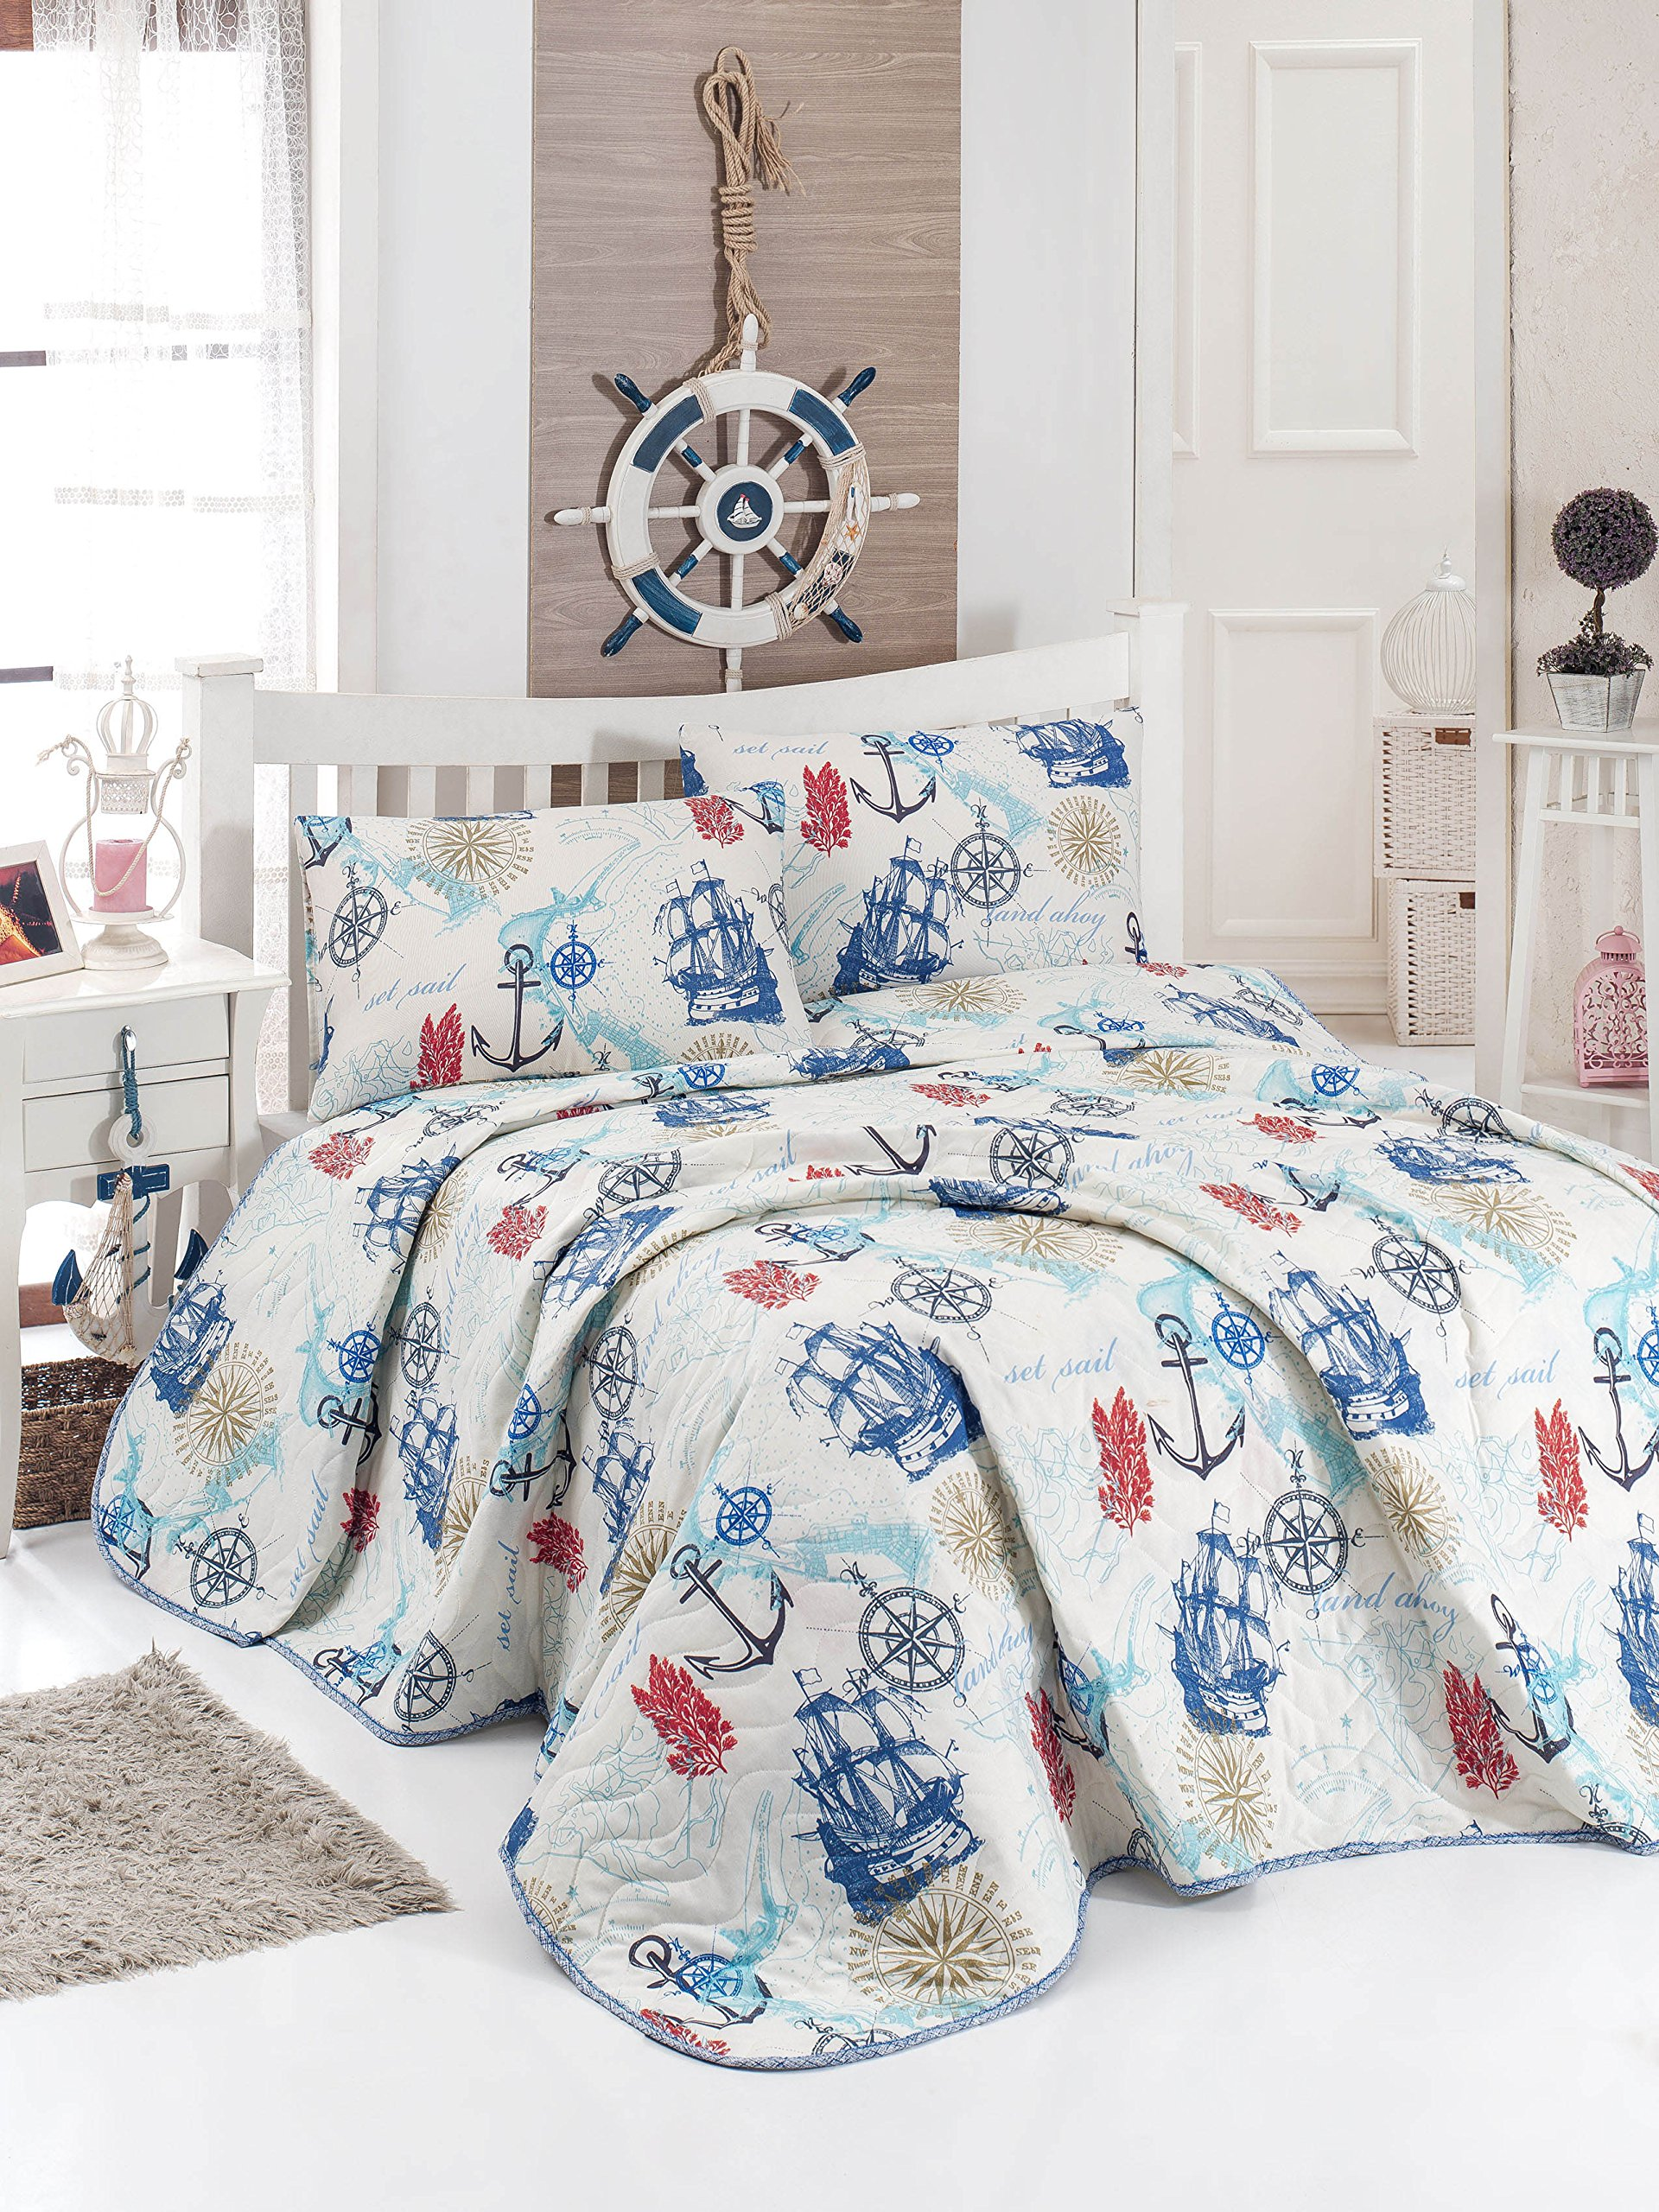 Nautical Bedding, Single/Twin Size Bedspread/Coverlet Set, Vintage Ship Anchors Compass Themed Girls Boys Bedding, 2 PCS,